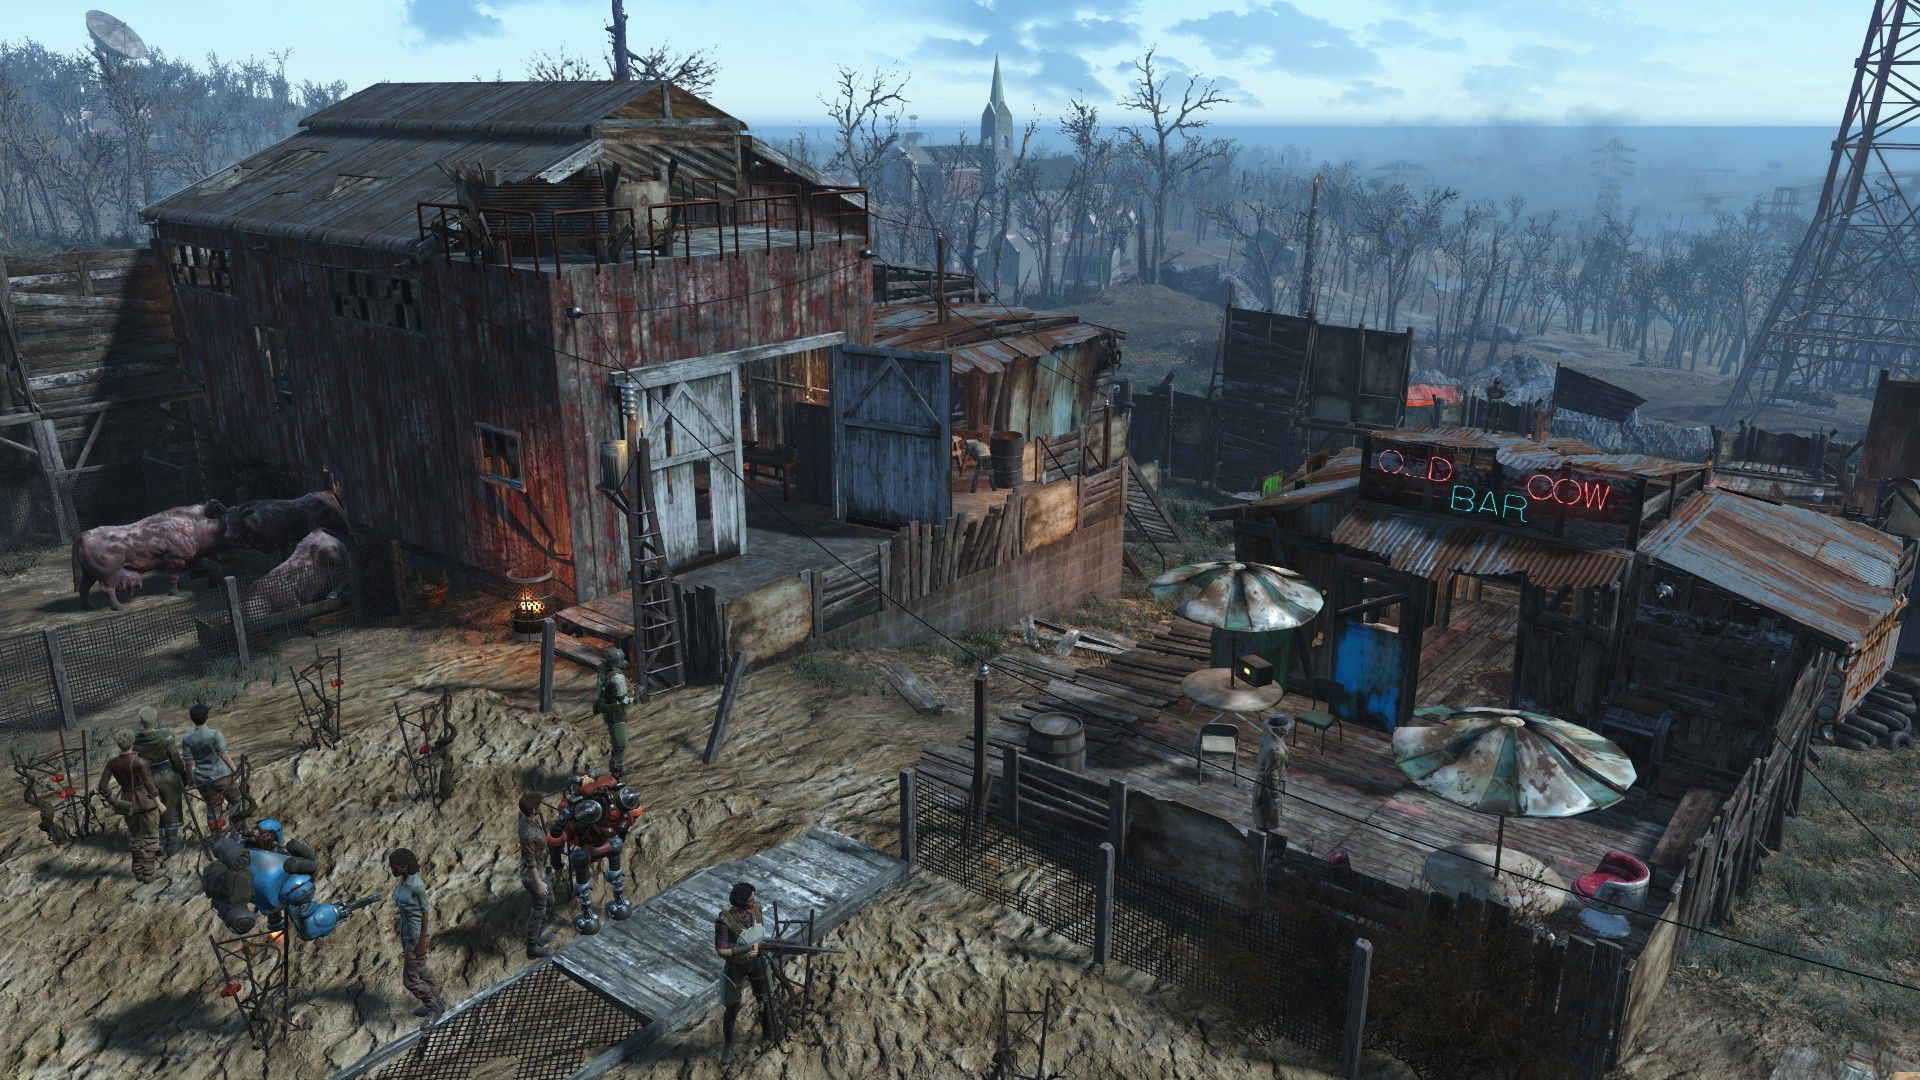 Pin by Kailey on Fallout   Fallout, Fallout rpg, Fallout 4